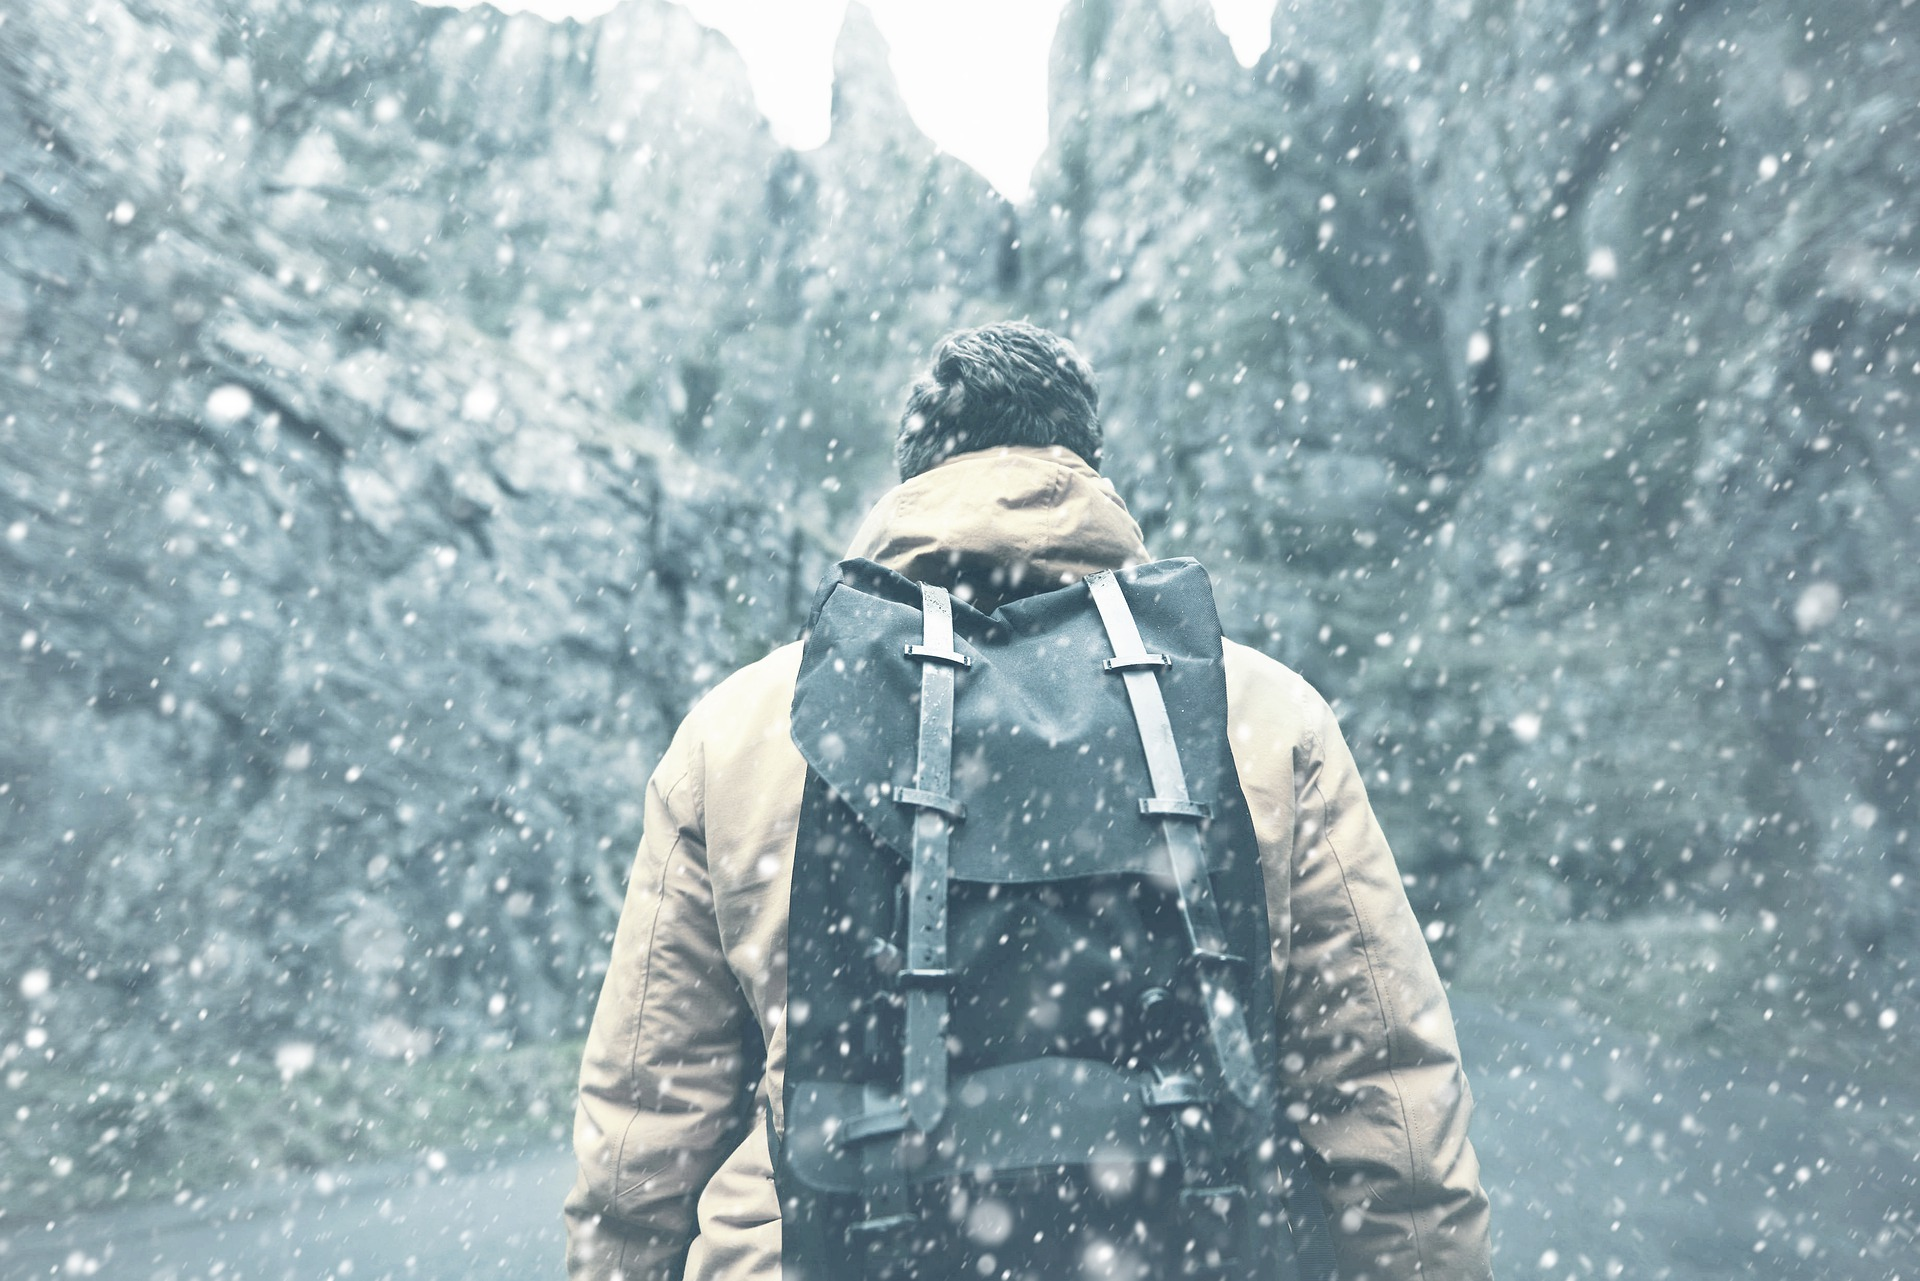 Man-in-snow-with-backpack